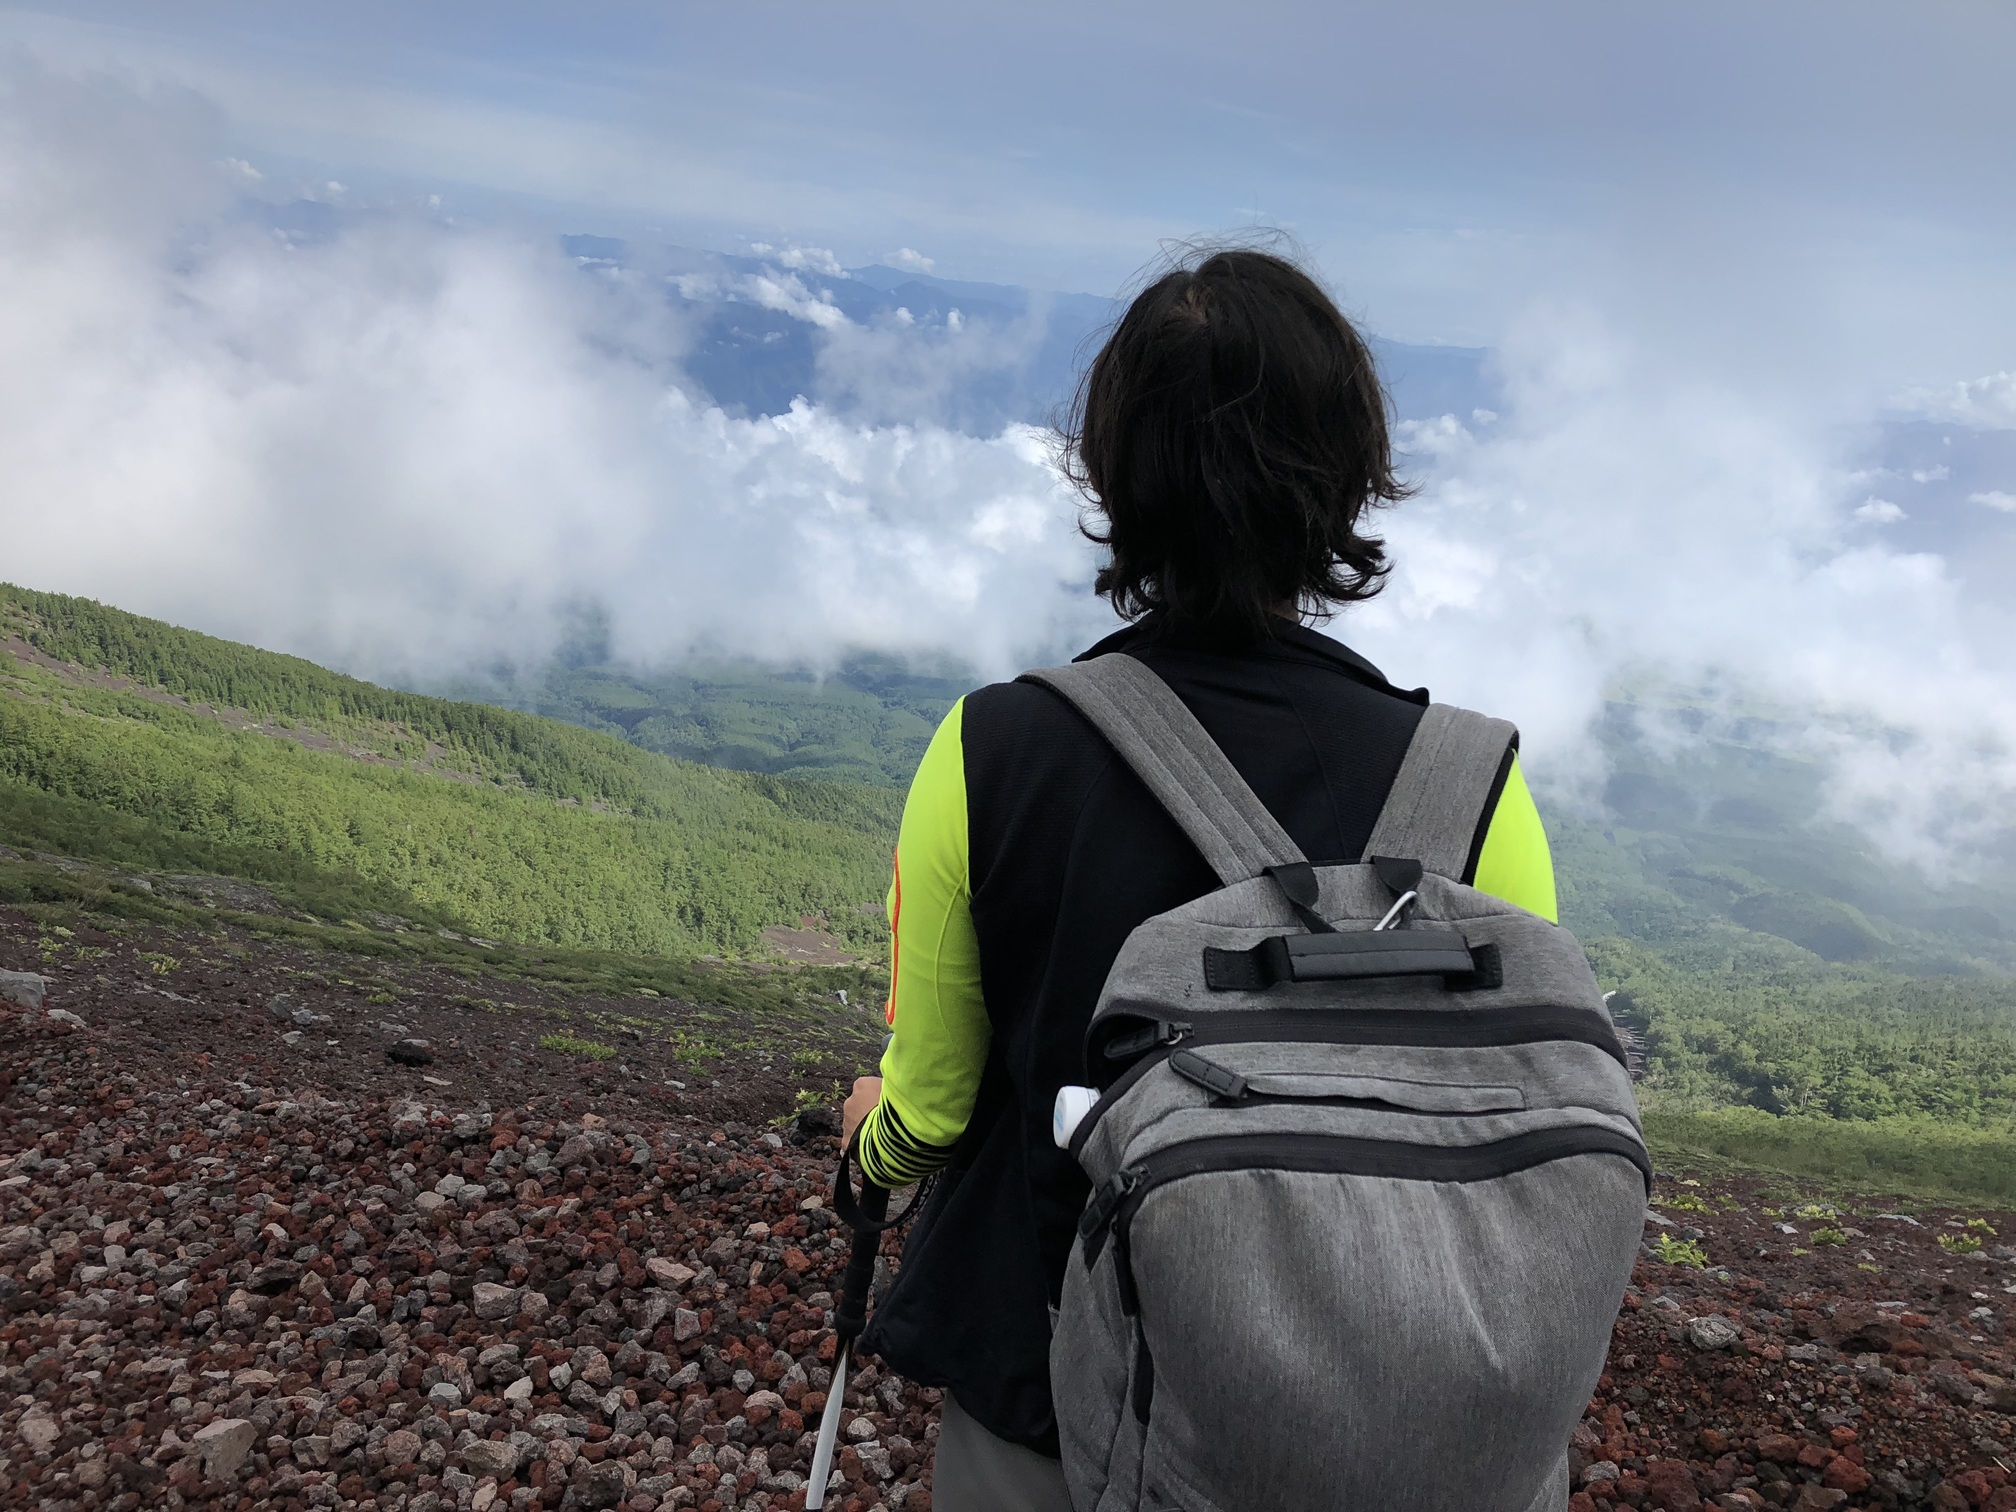 A picture of a woman with a backpack standing with her back to the camera looking at a view of the mountain cradled with clouds